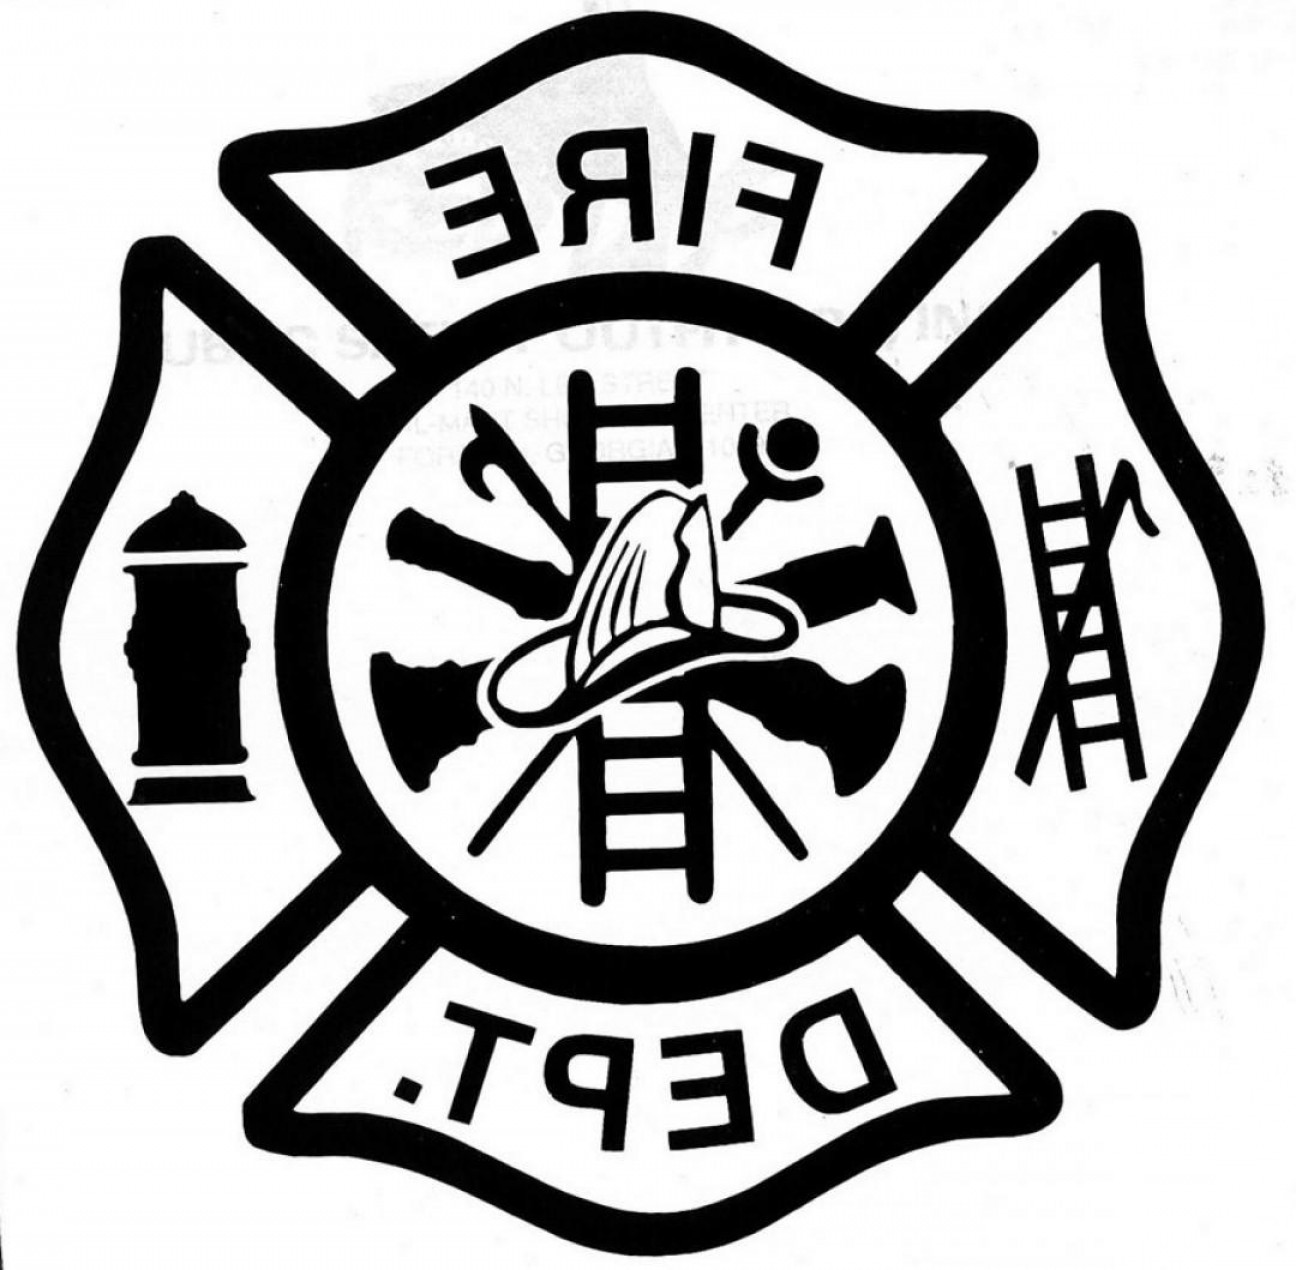 Fire Fighter Logo Vector: Top Fire Station Logos Vector Image